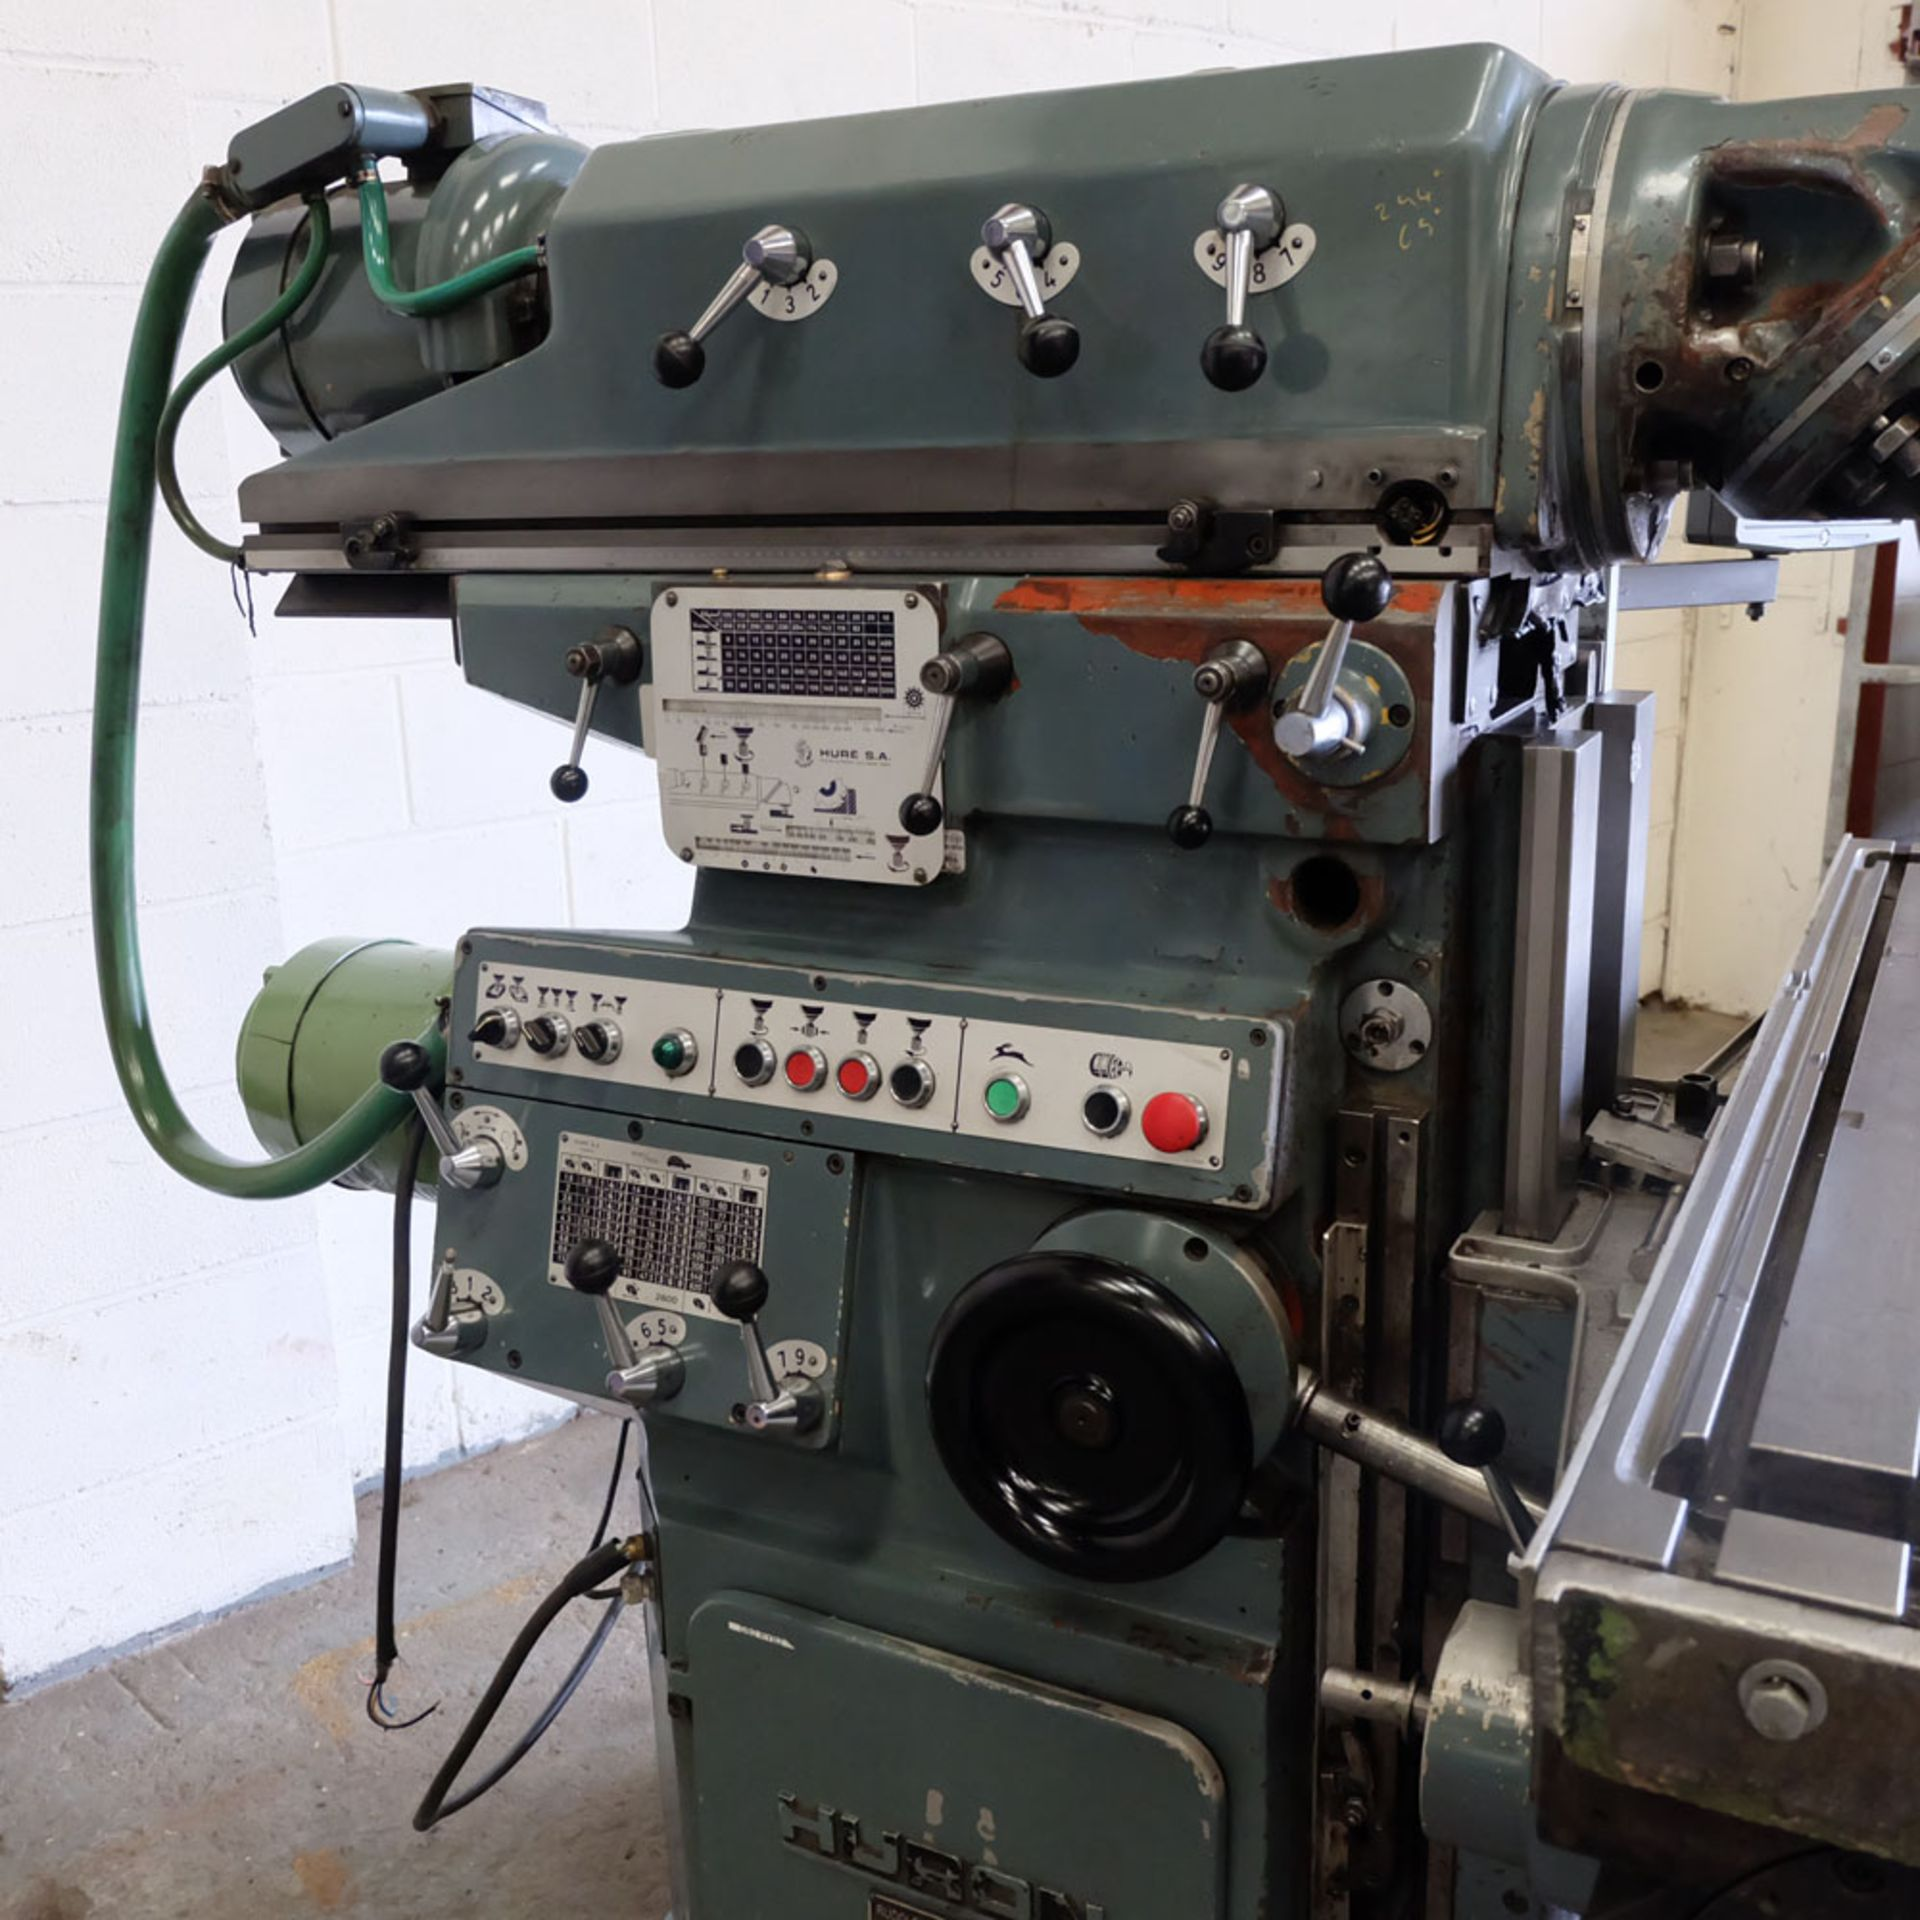 Huron NU4 Toolroom Universal Milling Machine. Table Size: 1435mm x 460mm. Taper: 50 ISO. 2 Axis DRO. - Image 4 of 6